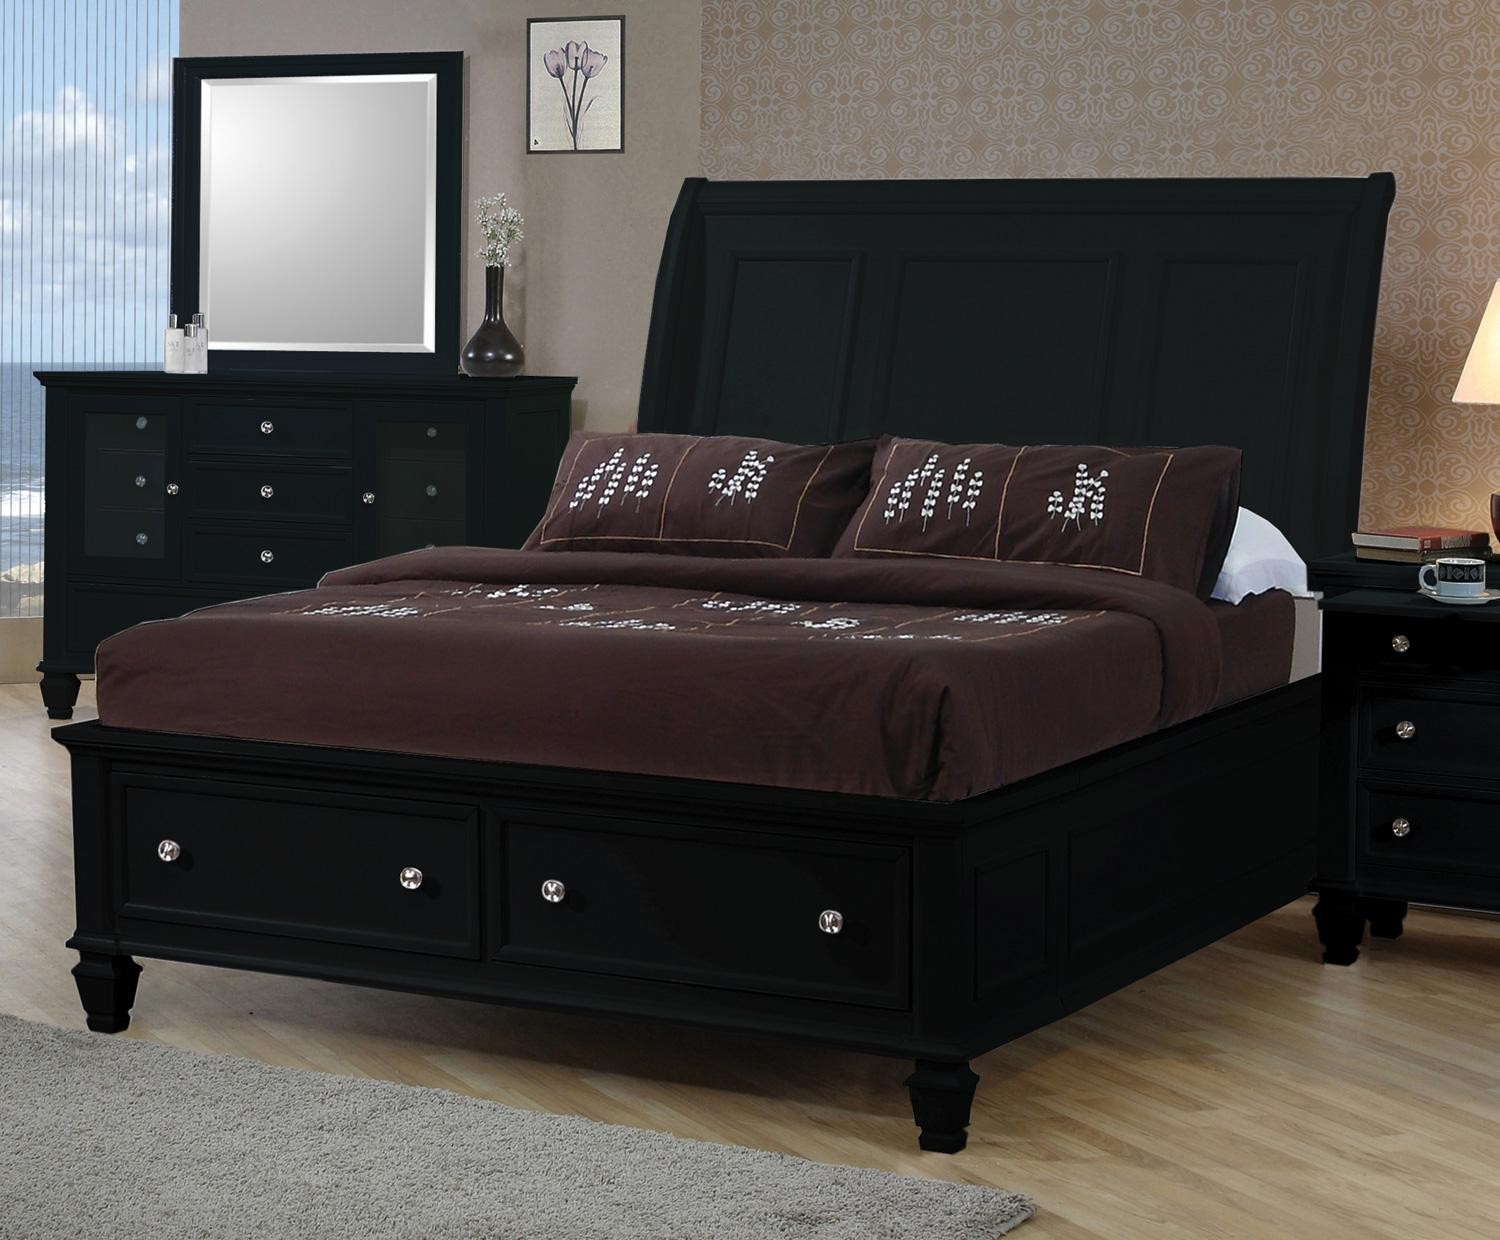 sandy beach black king sleigh storage bed from coaster 201329ke coleman furniture. Black Bedroom Furniture Sets. Home Design Ideas